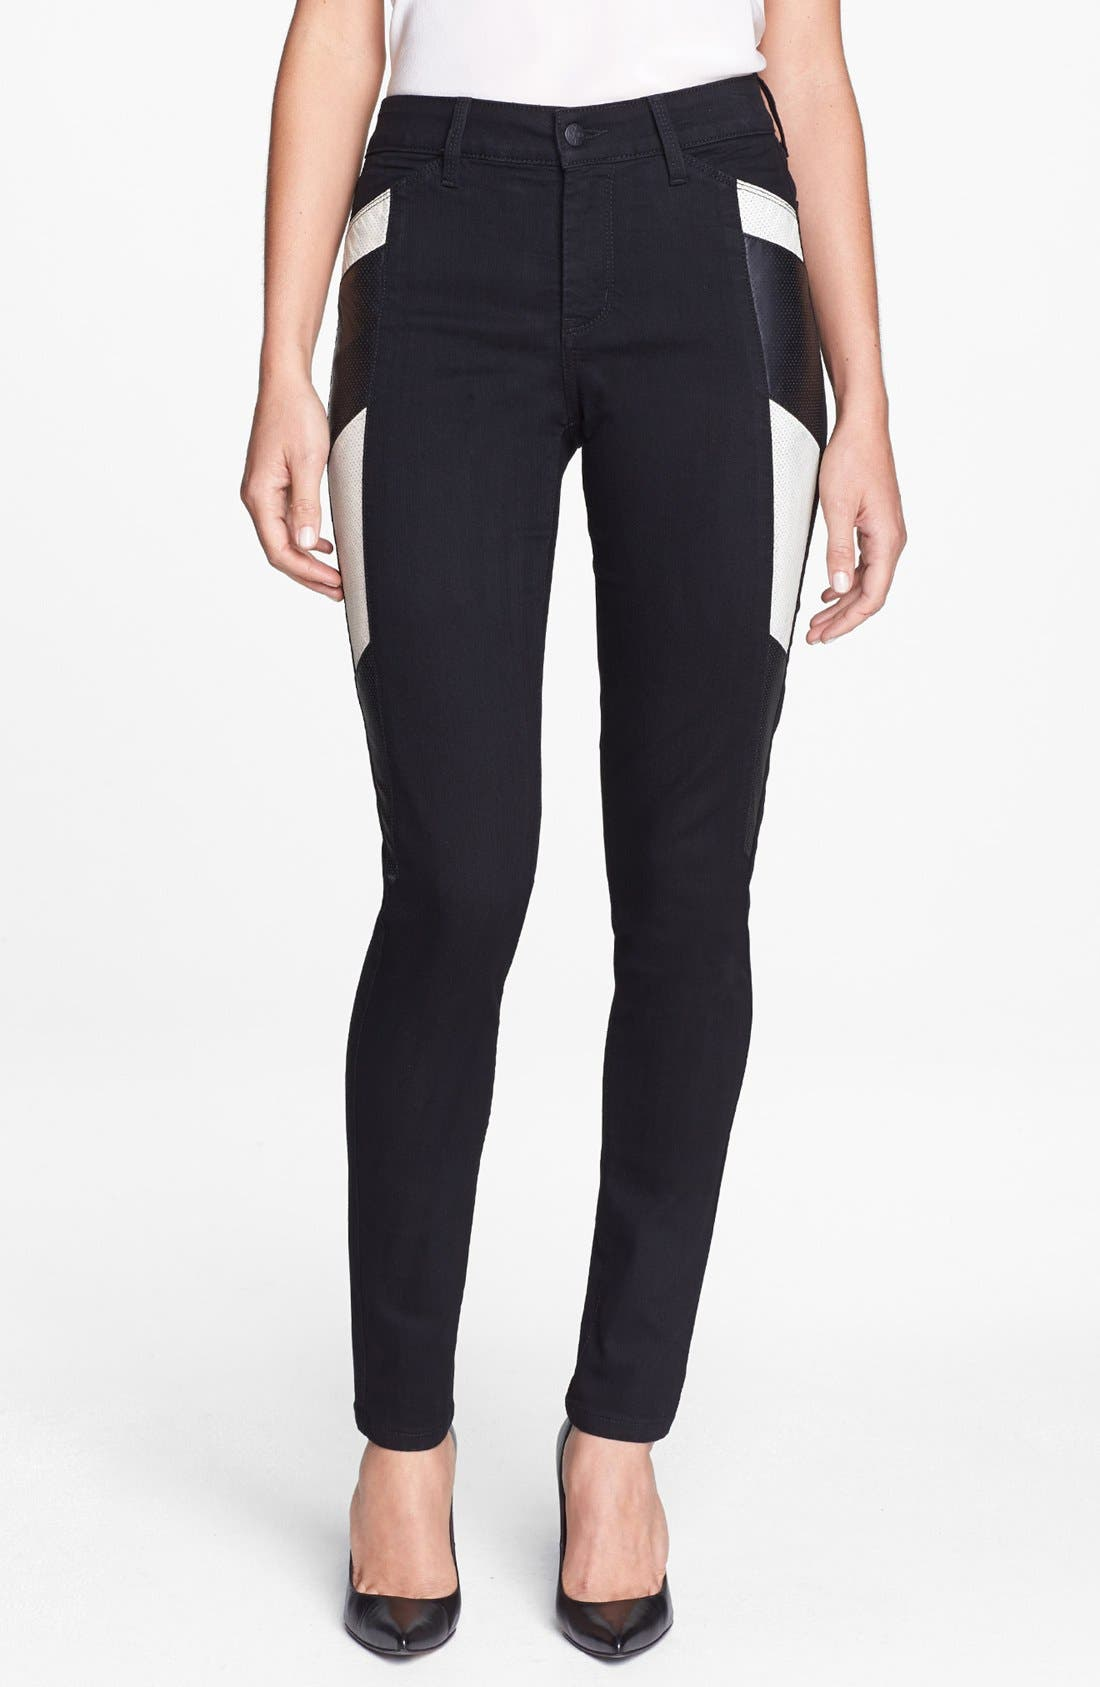 Alternate Image 1 Selected - NYDJ 'Aiden' Perforated Side Panel Stretch Skinny Jeans